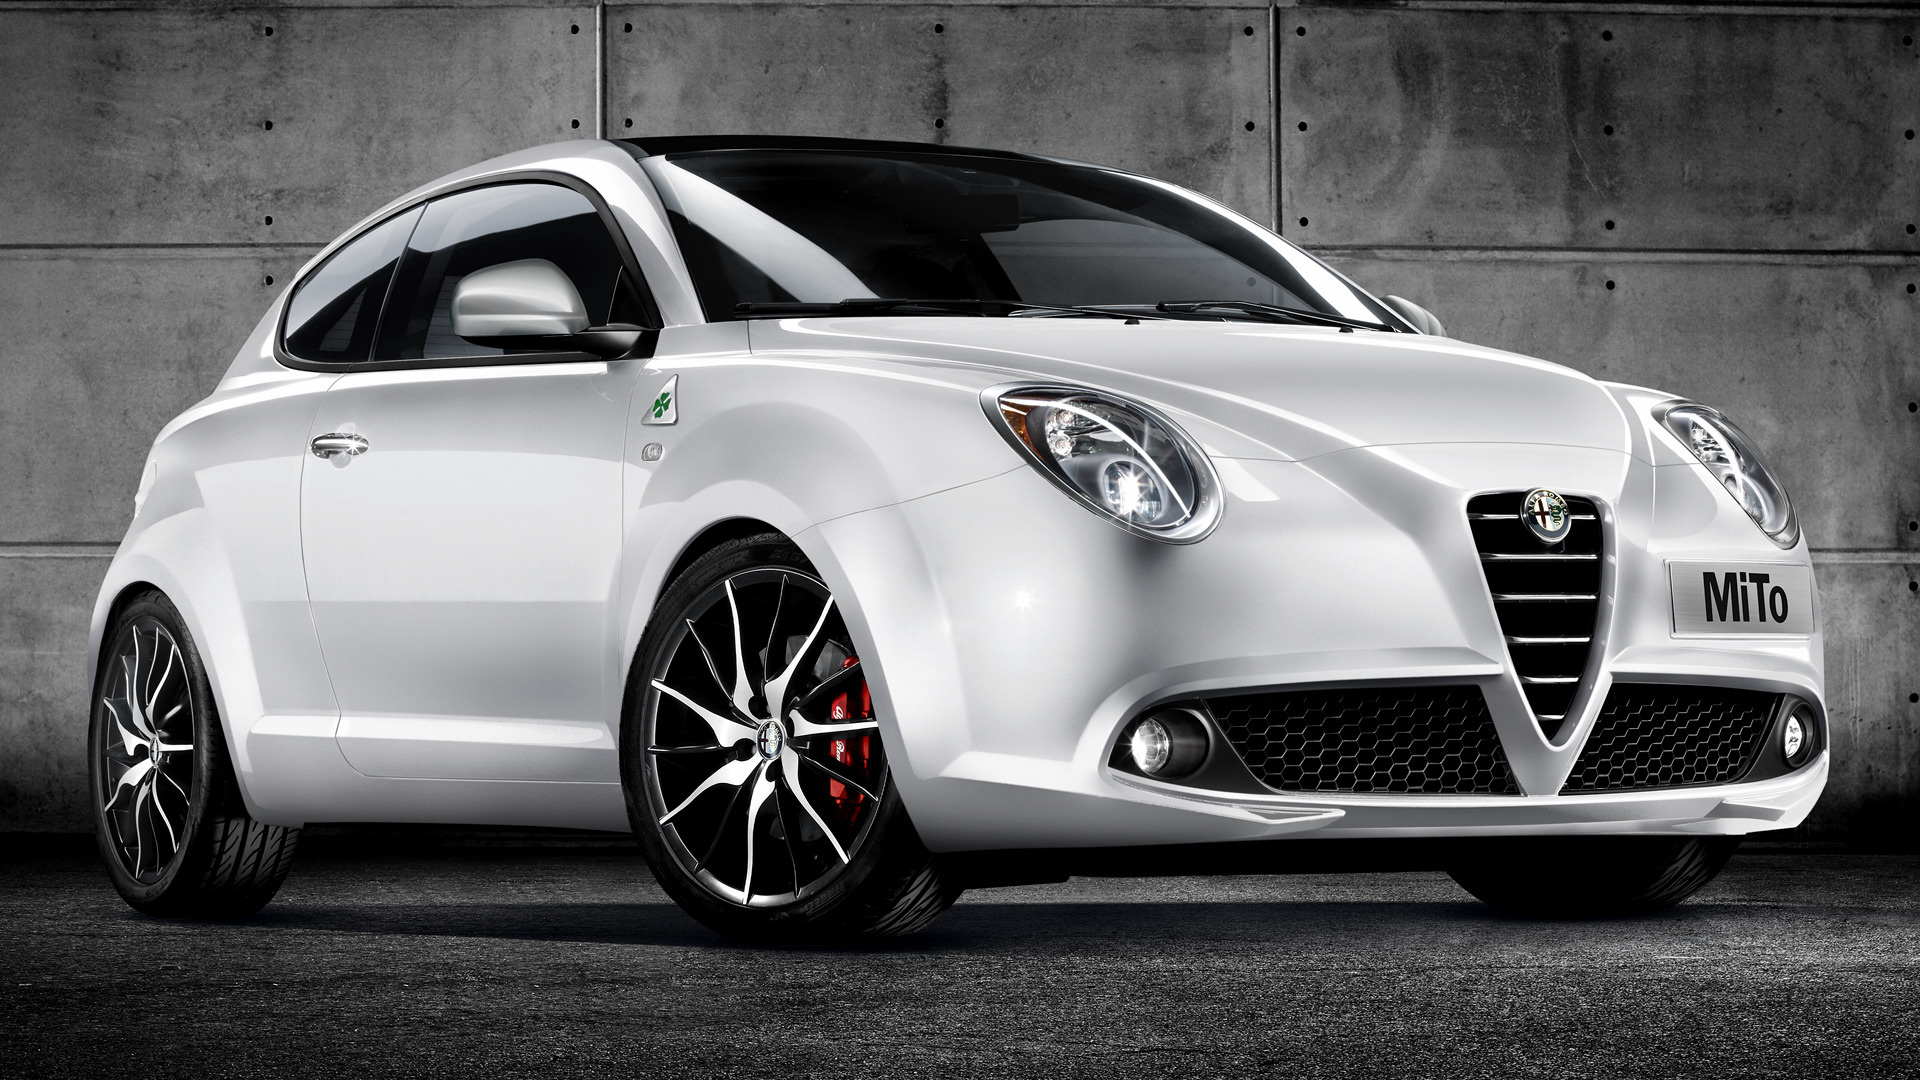 alfa romeo mito quadrifoglio verde 2009 wallpapers and hd images car pixel. Black Bedroom Furniture Sets. Home Design Ideas